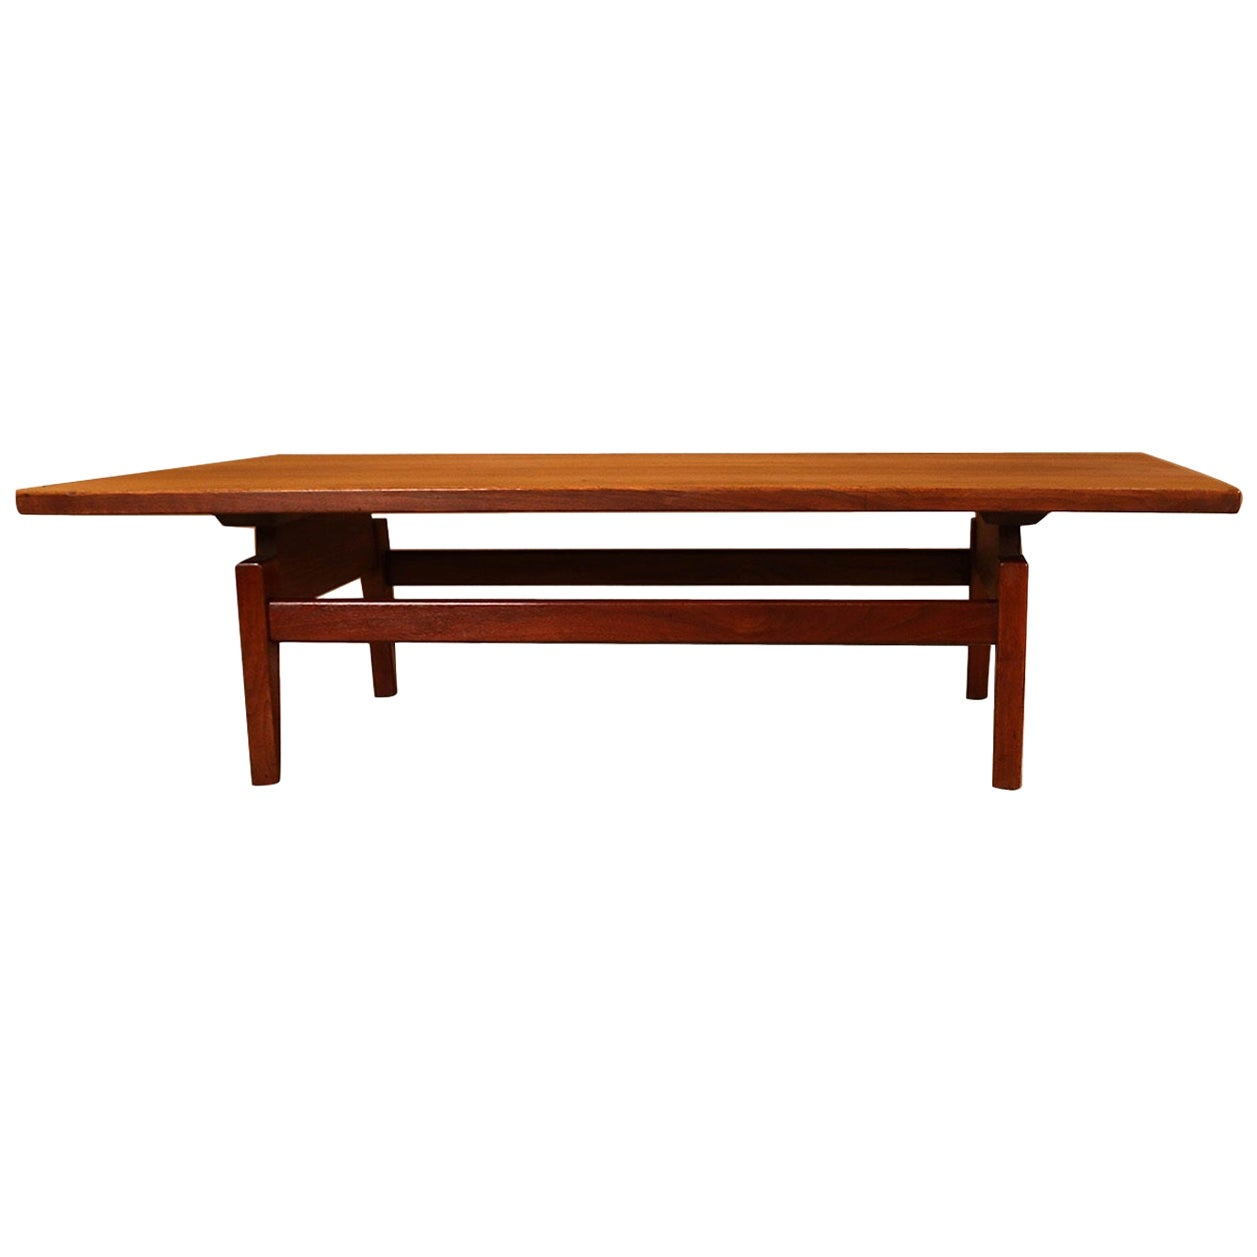 Midcentury Jens Risom Floating Top Coffee Table Bench